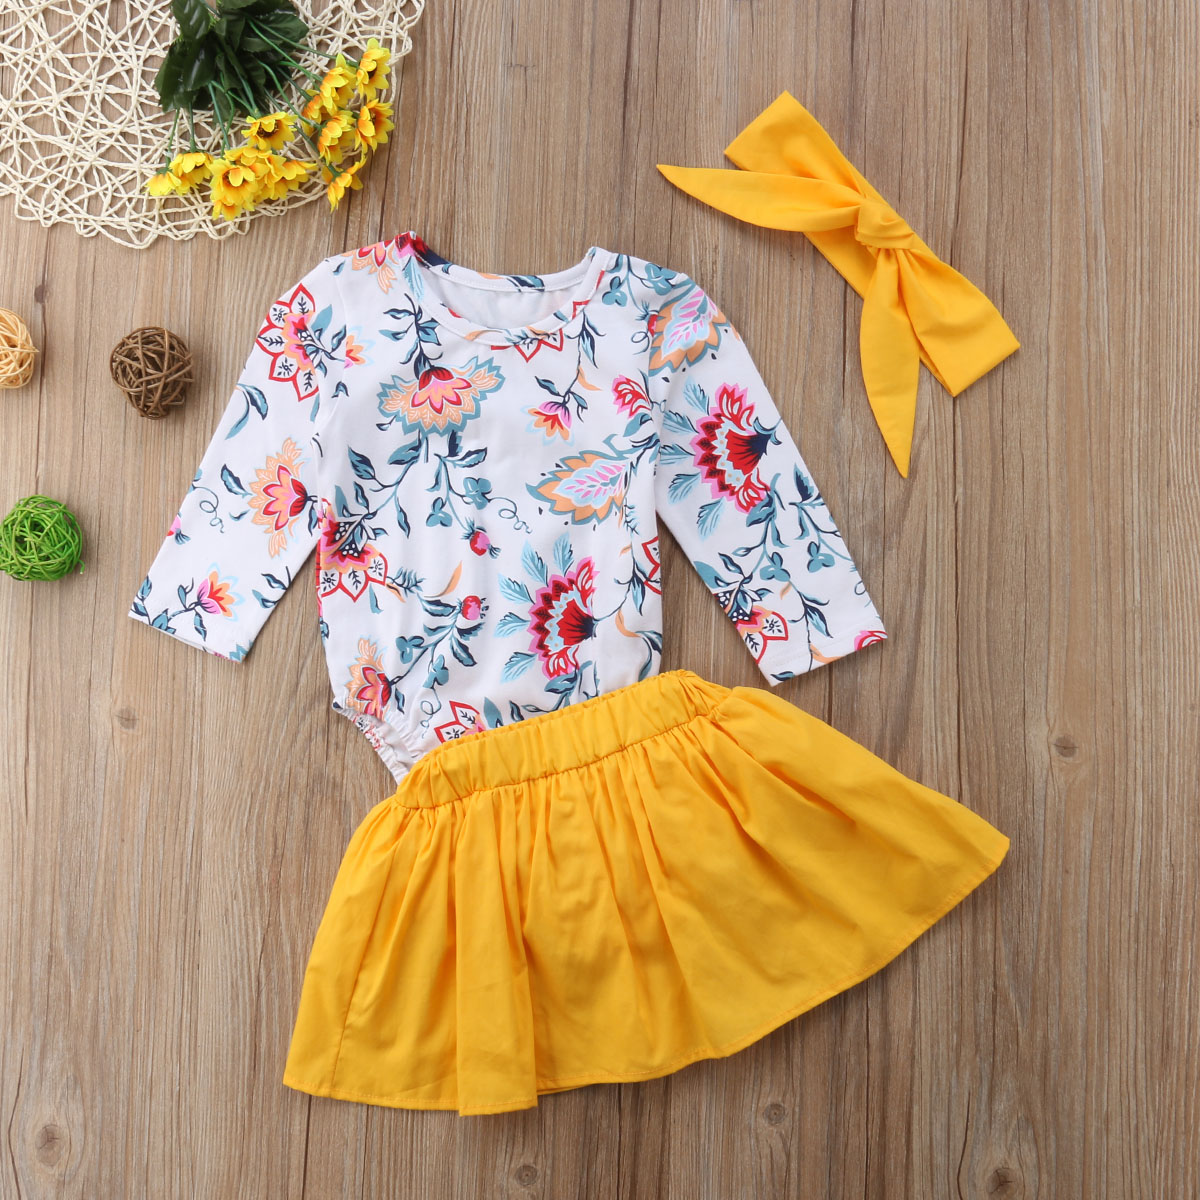 6a23eab1234 Newborn Baby Girl Clothes Set Floral Long Sleeve Romper Tops+Shorts Skirts+Headband  3pcs Outfit Cute Baby Clothing Fashion-in Clothing Sets from Mother ...